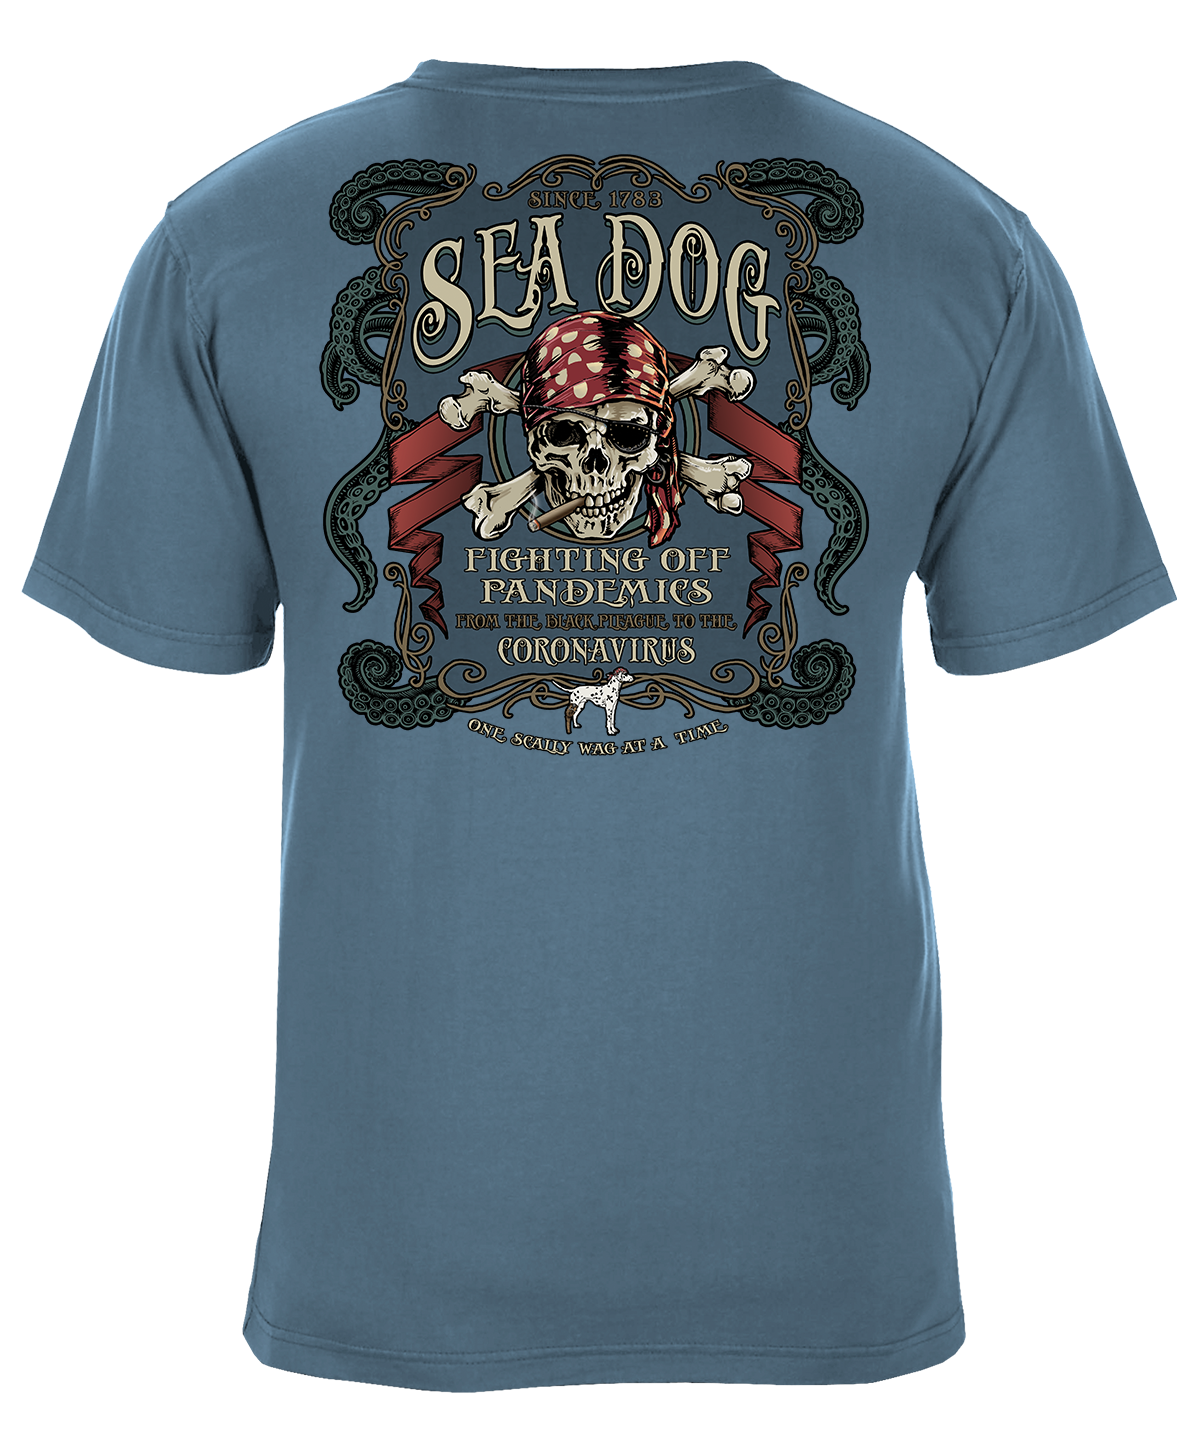 Sea Dog Pandemic